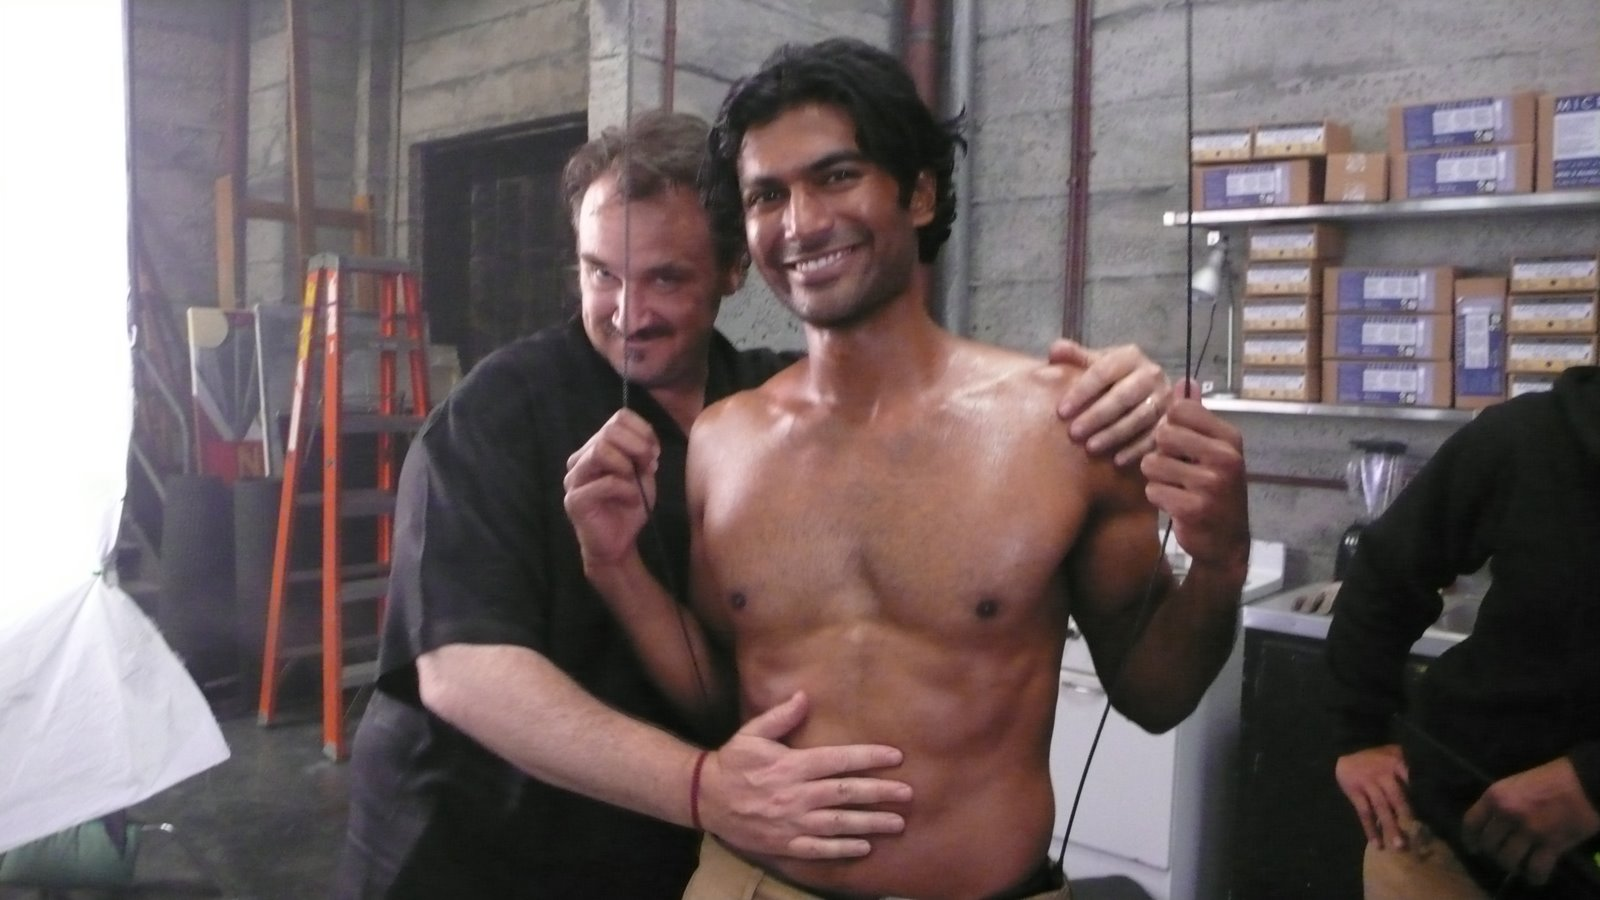 [ep+2+always+looking+out+for+the+fans+-+I+apply+a+light+glaze+of+oil+to+Sendhil's+body]